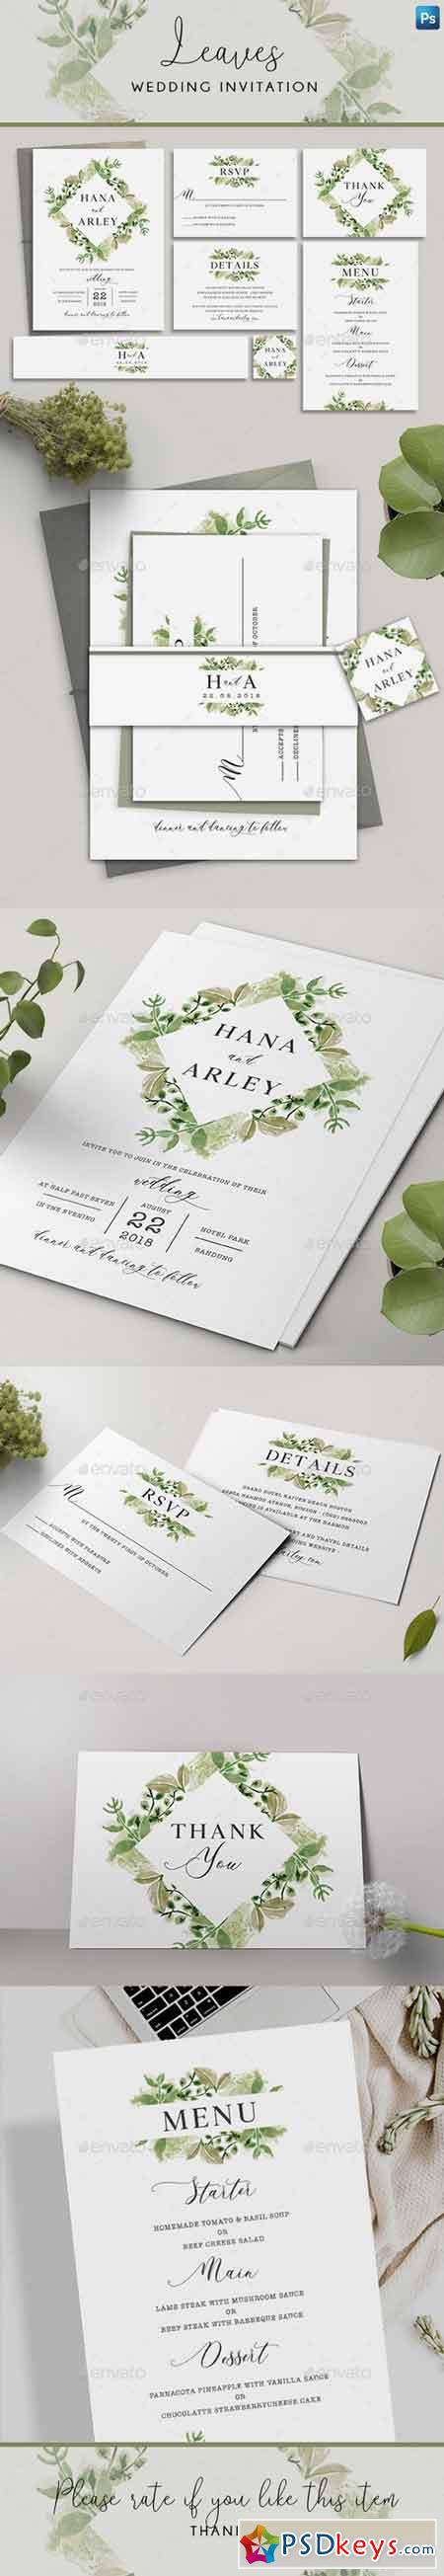 Leaves Wedding Invitation 22259944